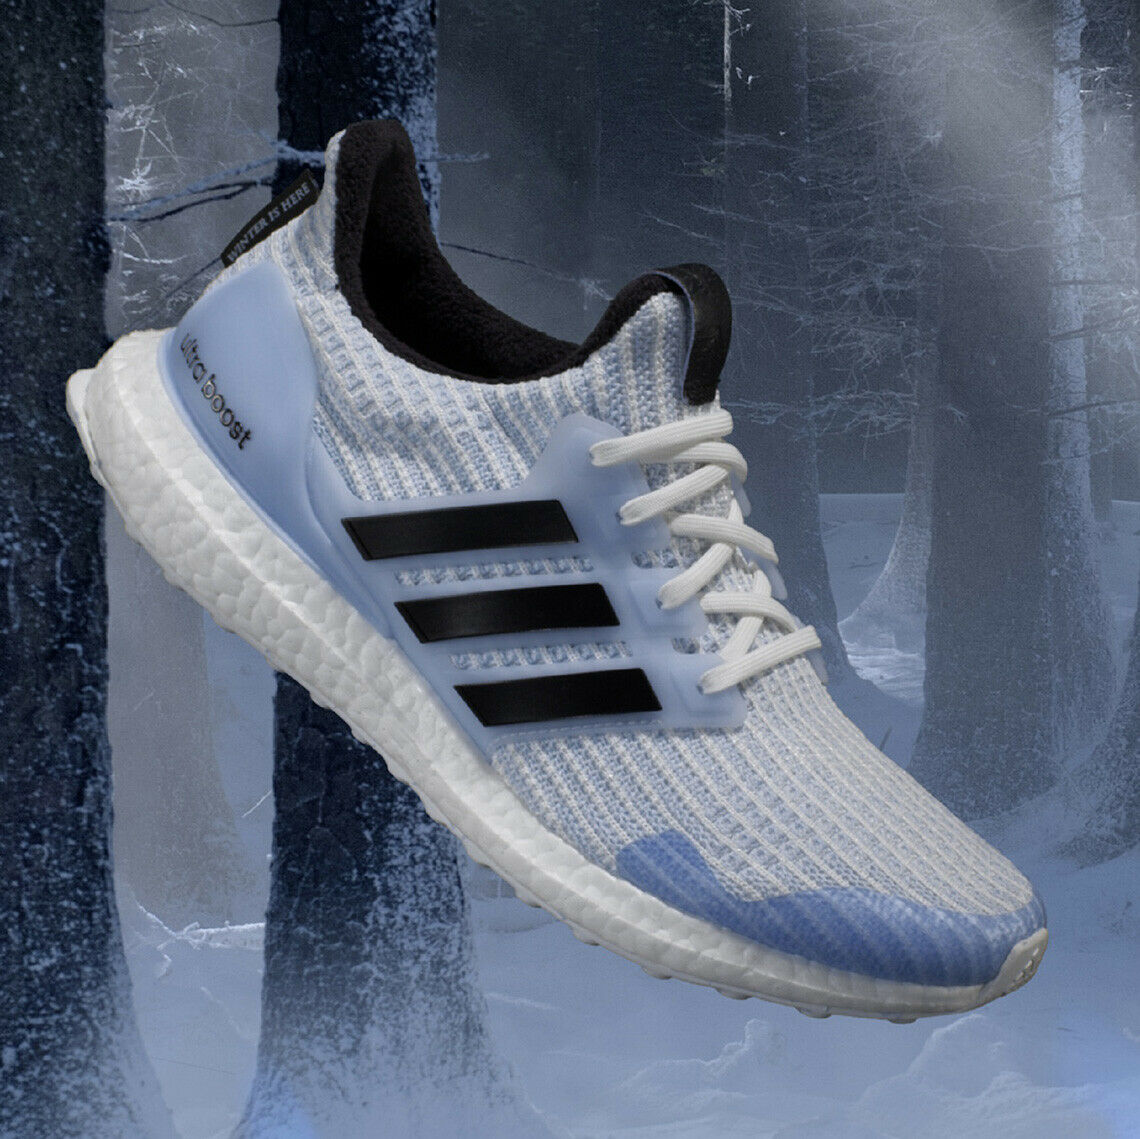 Adidas Ultra Boost 4.0 Game of Thrones White Walkers Size 11.5. EE3708 yeezy nmd